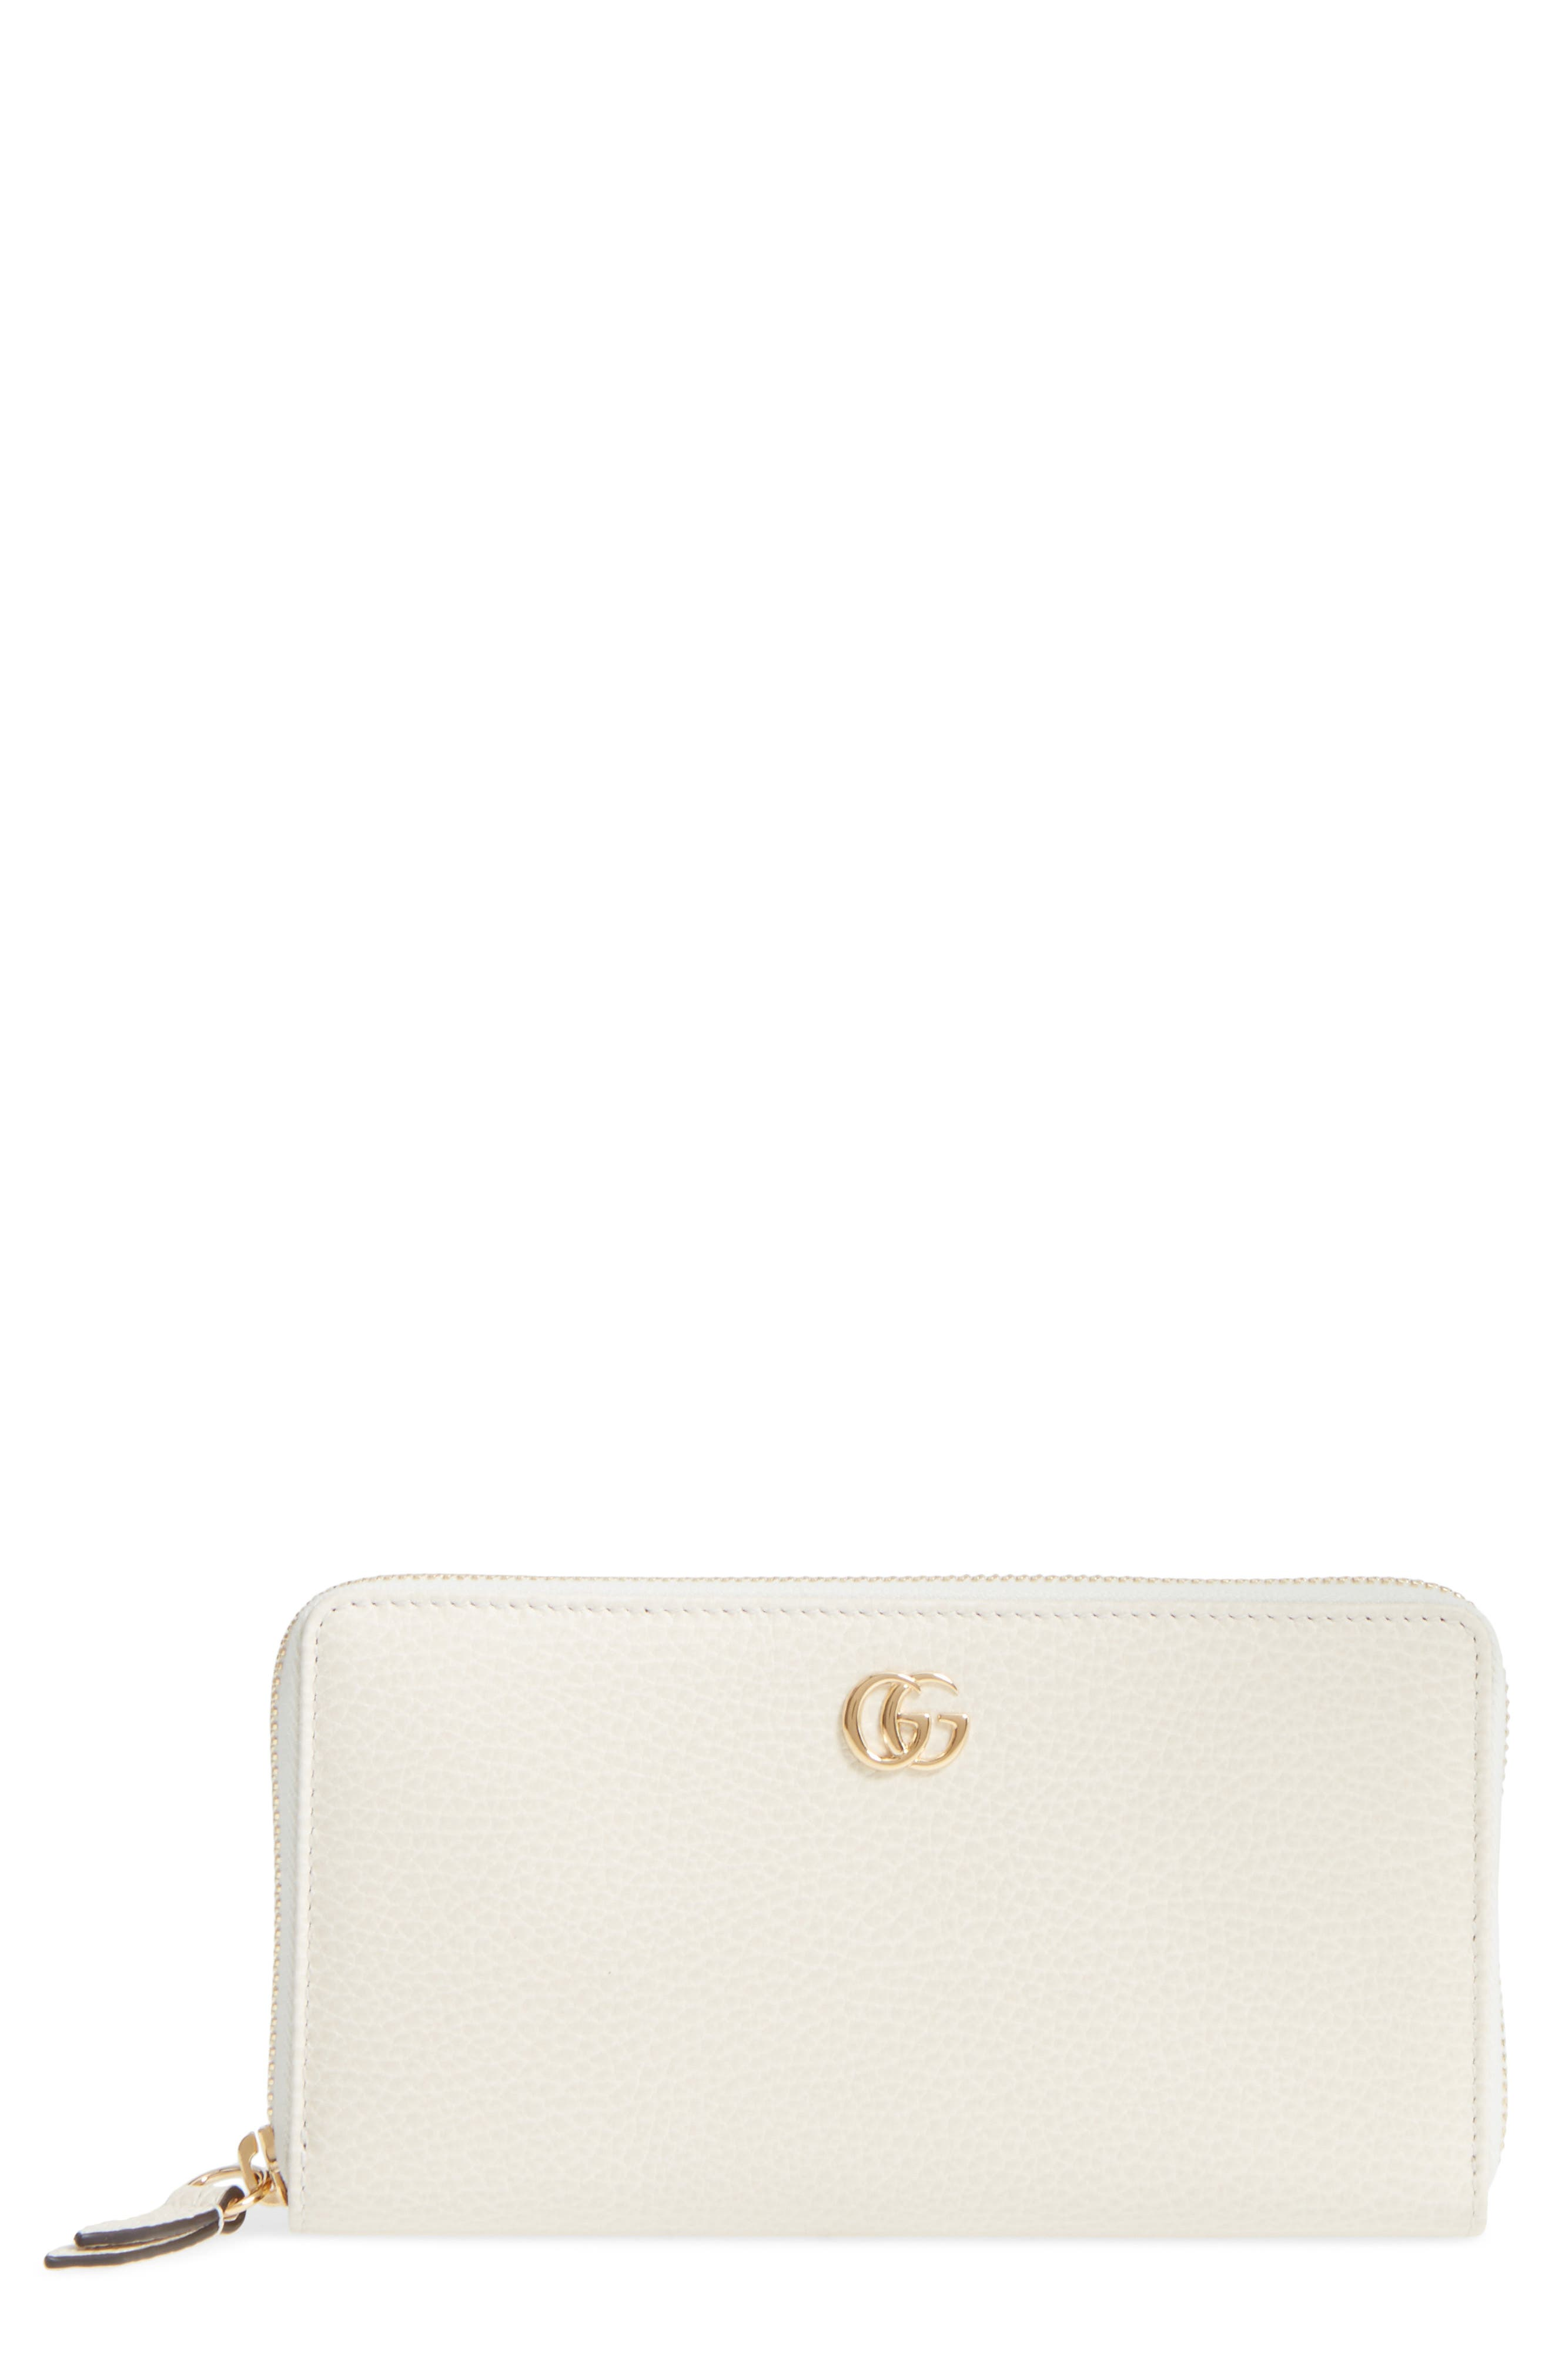 Alternate Image 1 Selected - Gucci Petite Marmont Leather Zip Around Wallet